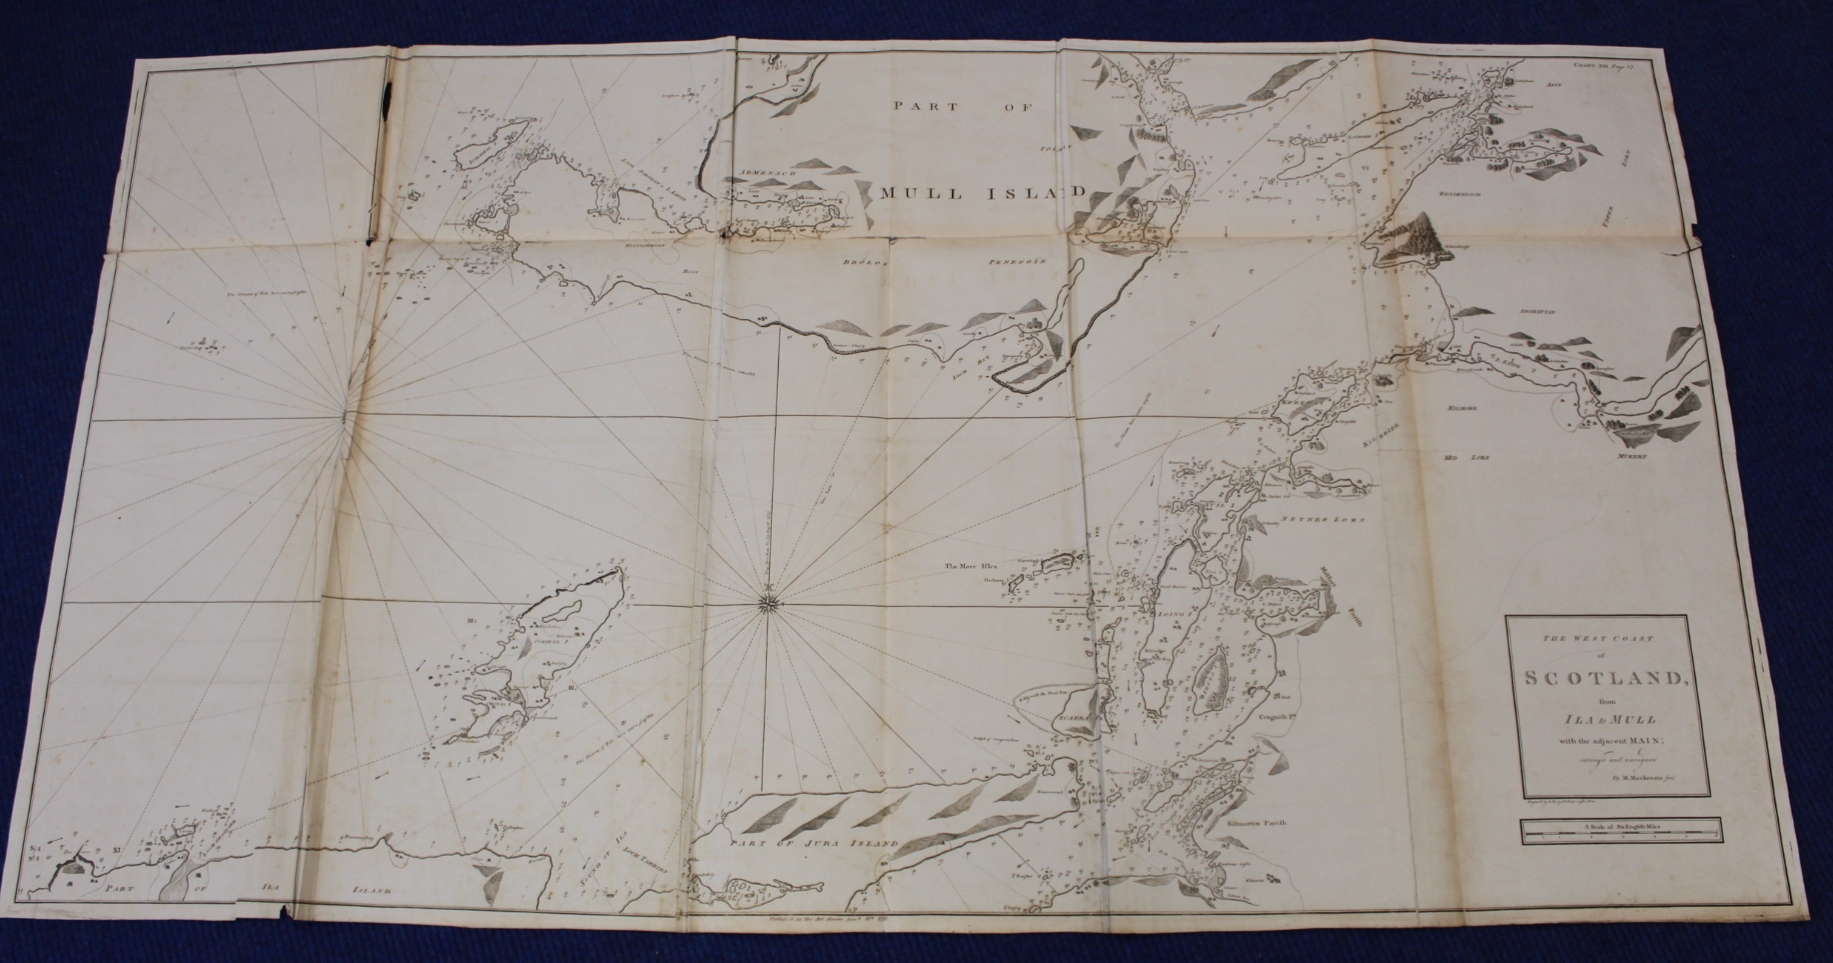 MACKENZIE MURDOCH (SNR.).A General Chart of the West Coast & Western Islands of Scotland from - Image 58 of 66